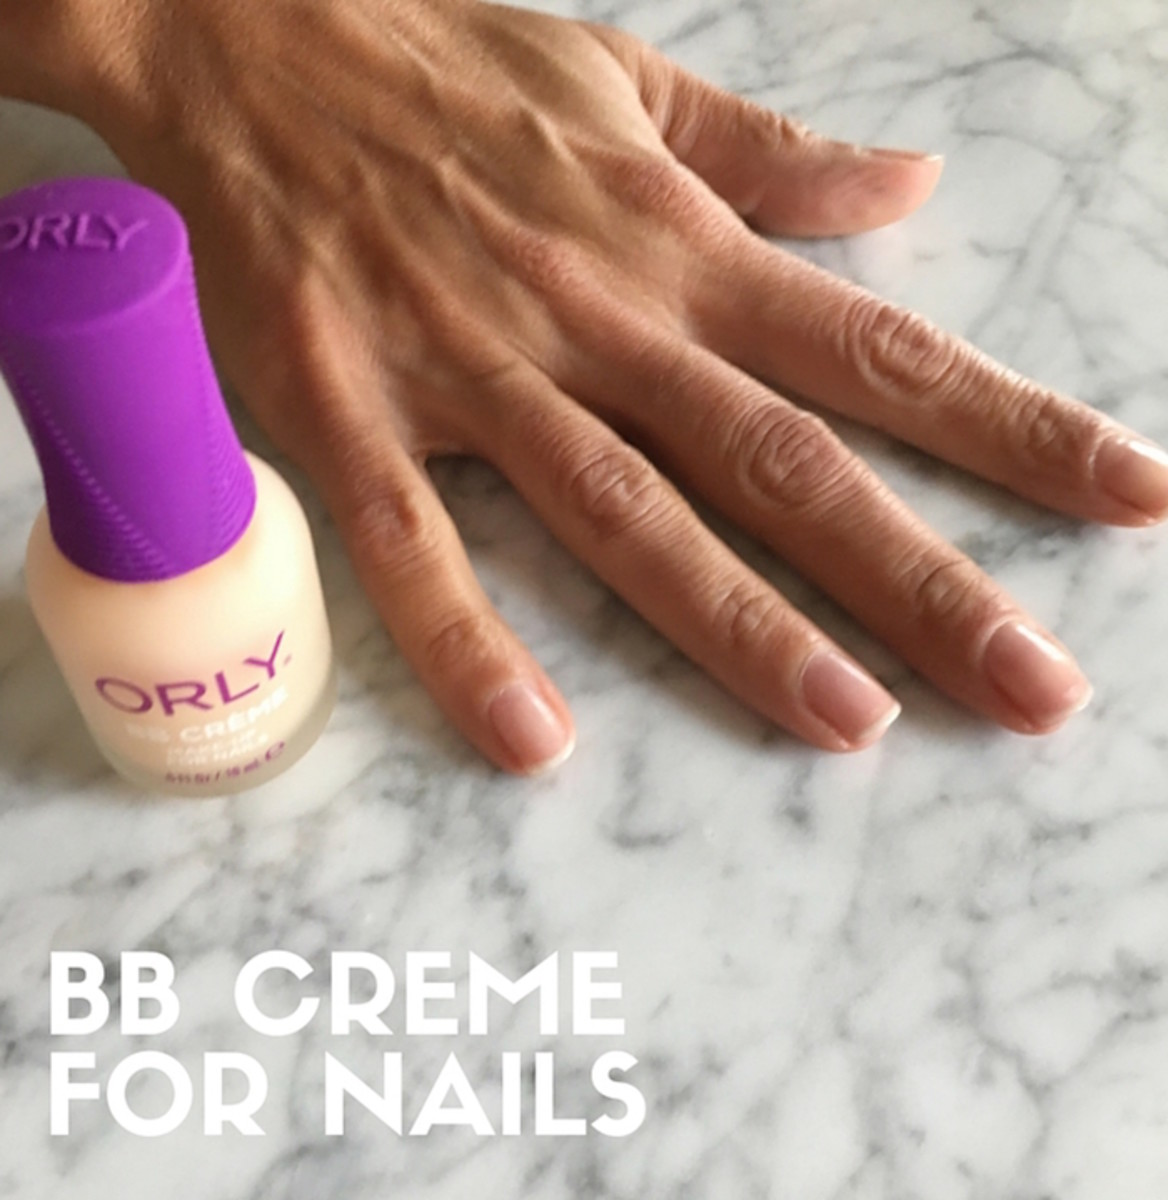 Orly BB Creme Polish Review - MomTrends